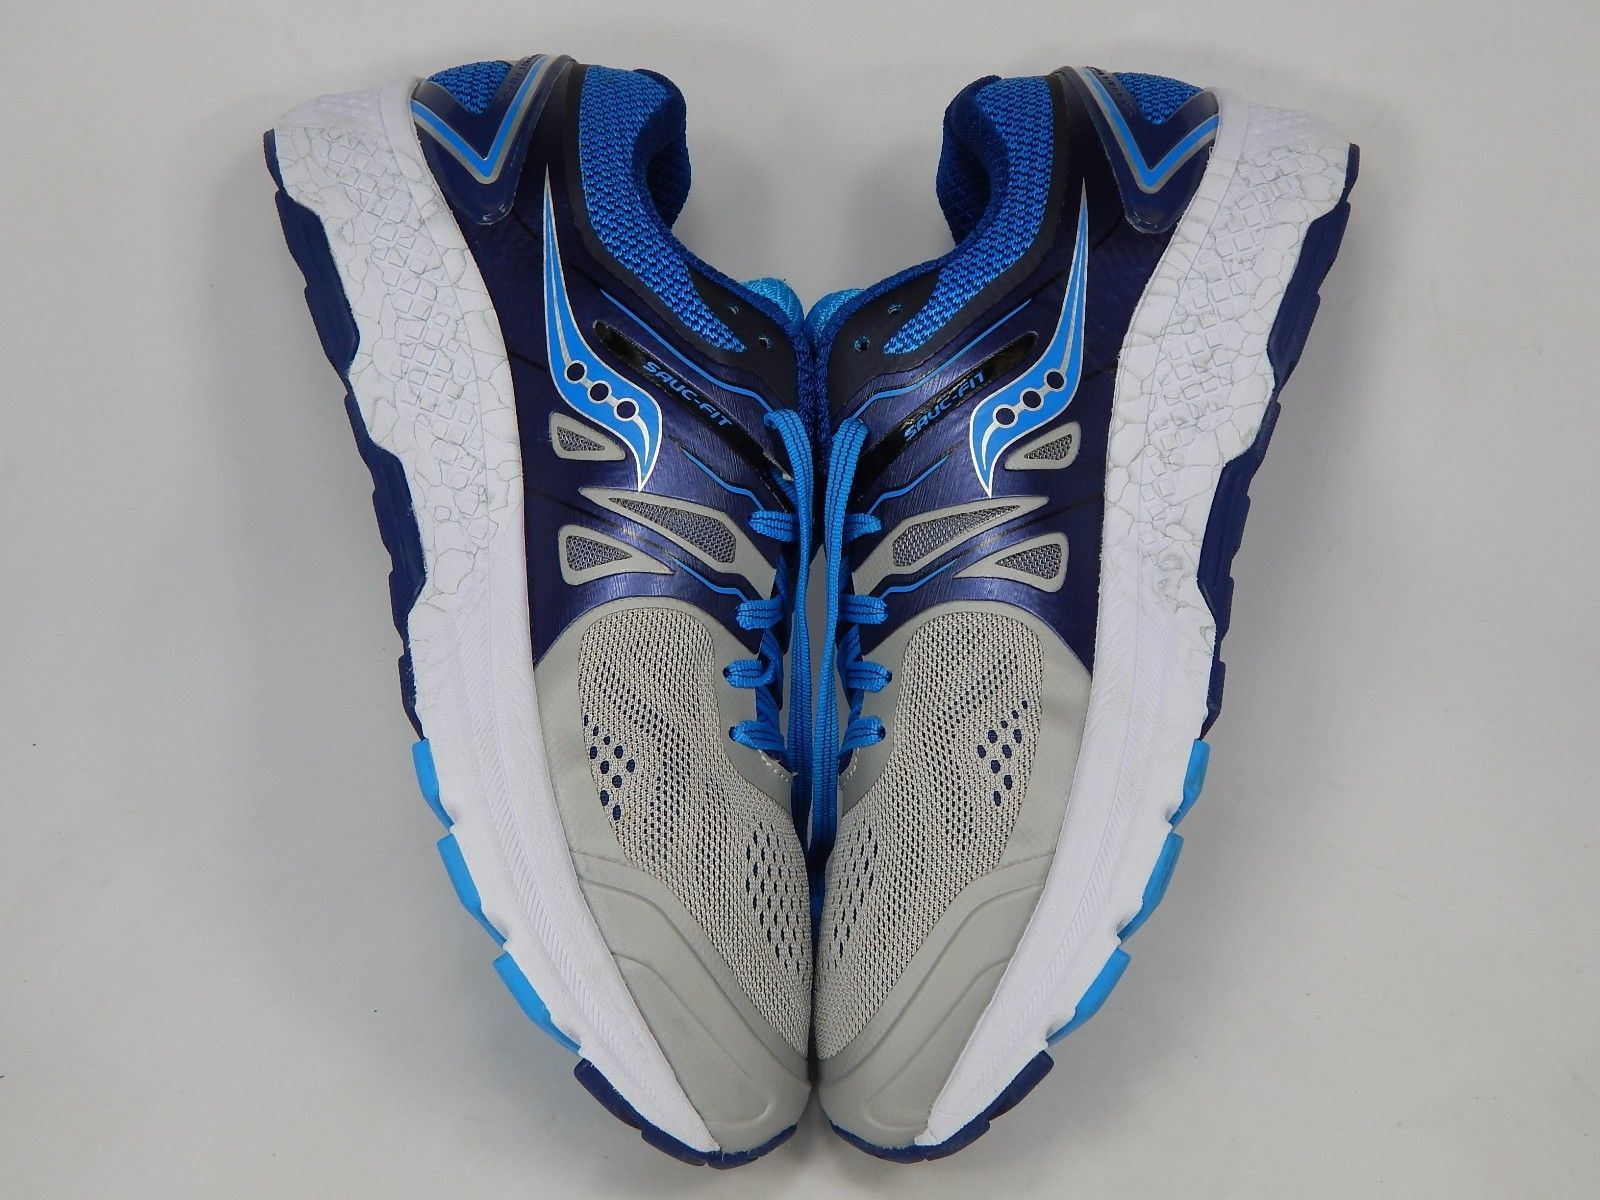 Saucony Omni 16 Size 11.5 M (B) EU 44 Women's Running Shoes Gray Blue S10370-1